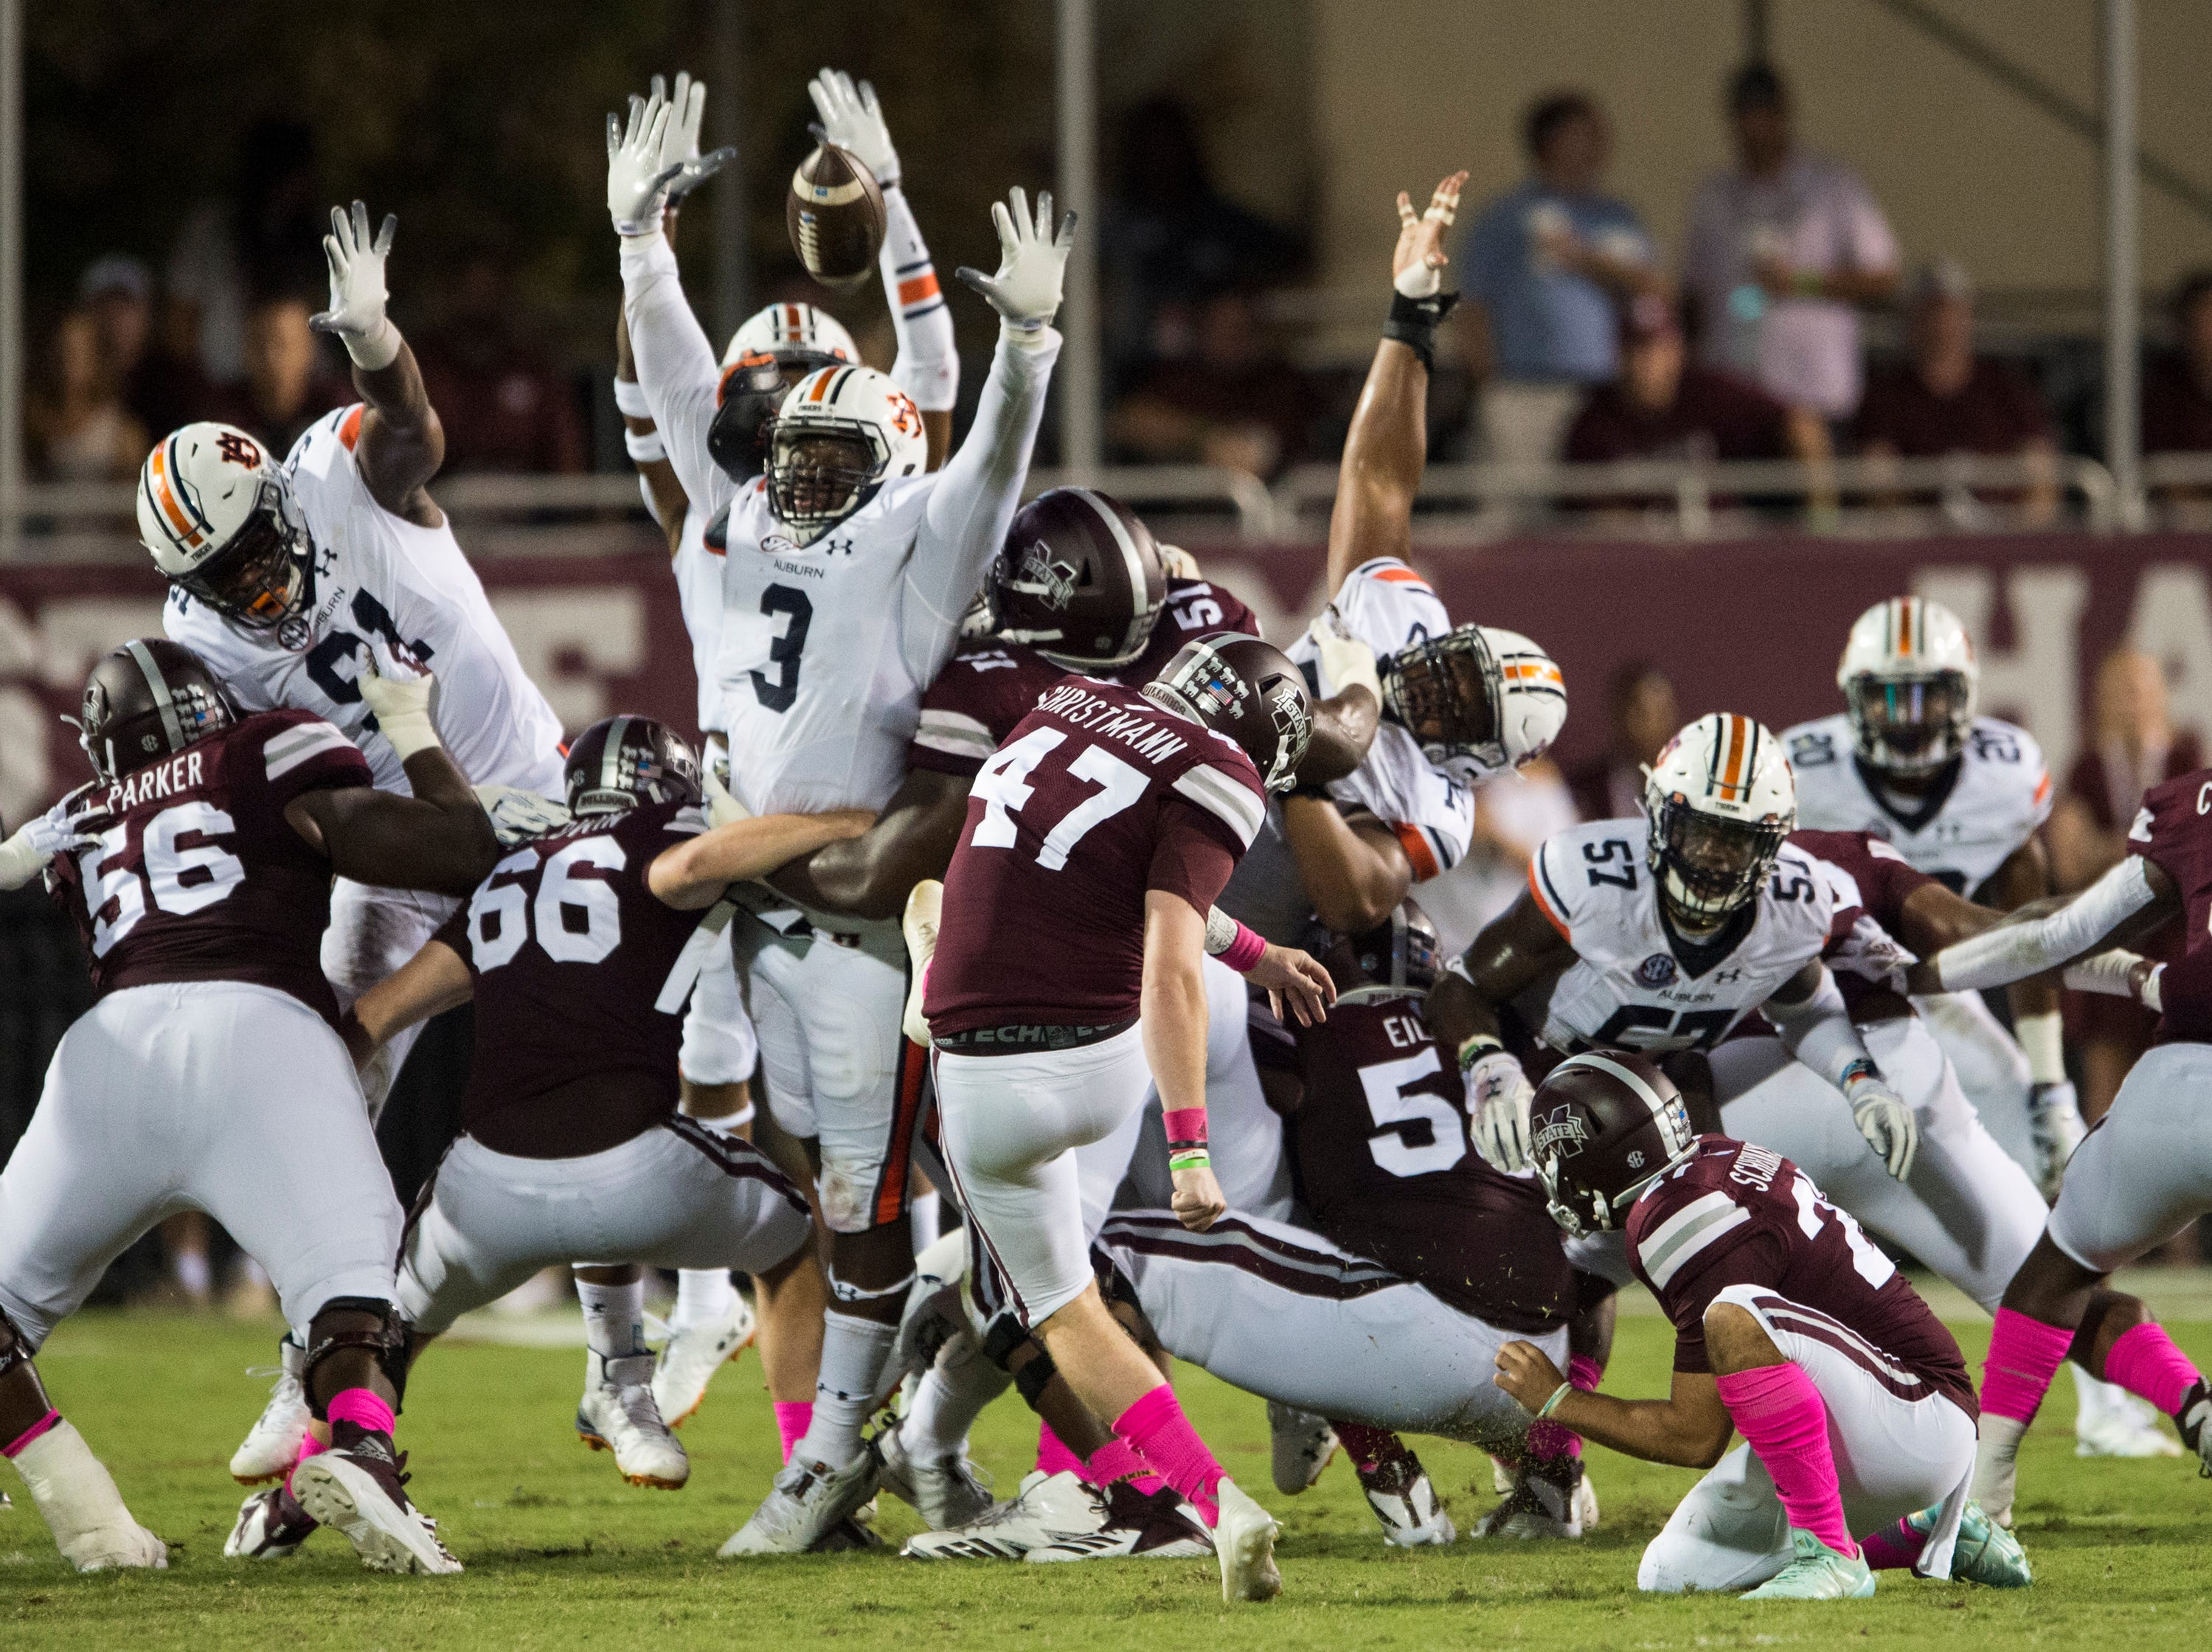 Auburn's defense attempts to block a Mississippi State's Jace Christmann (47) field goal at Davis Wade Stadium in Starkville, Miss., on Saturday, Oct. 6, 2018. Mississippi State leads Auburn 13-3 at halftime.